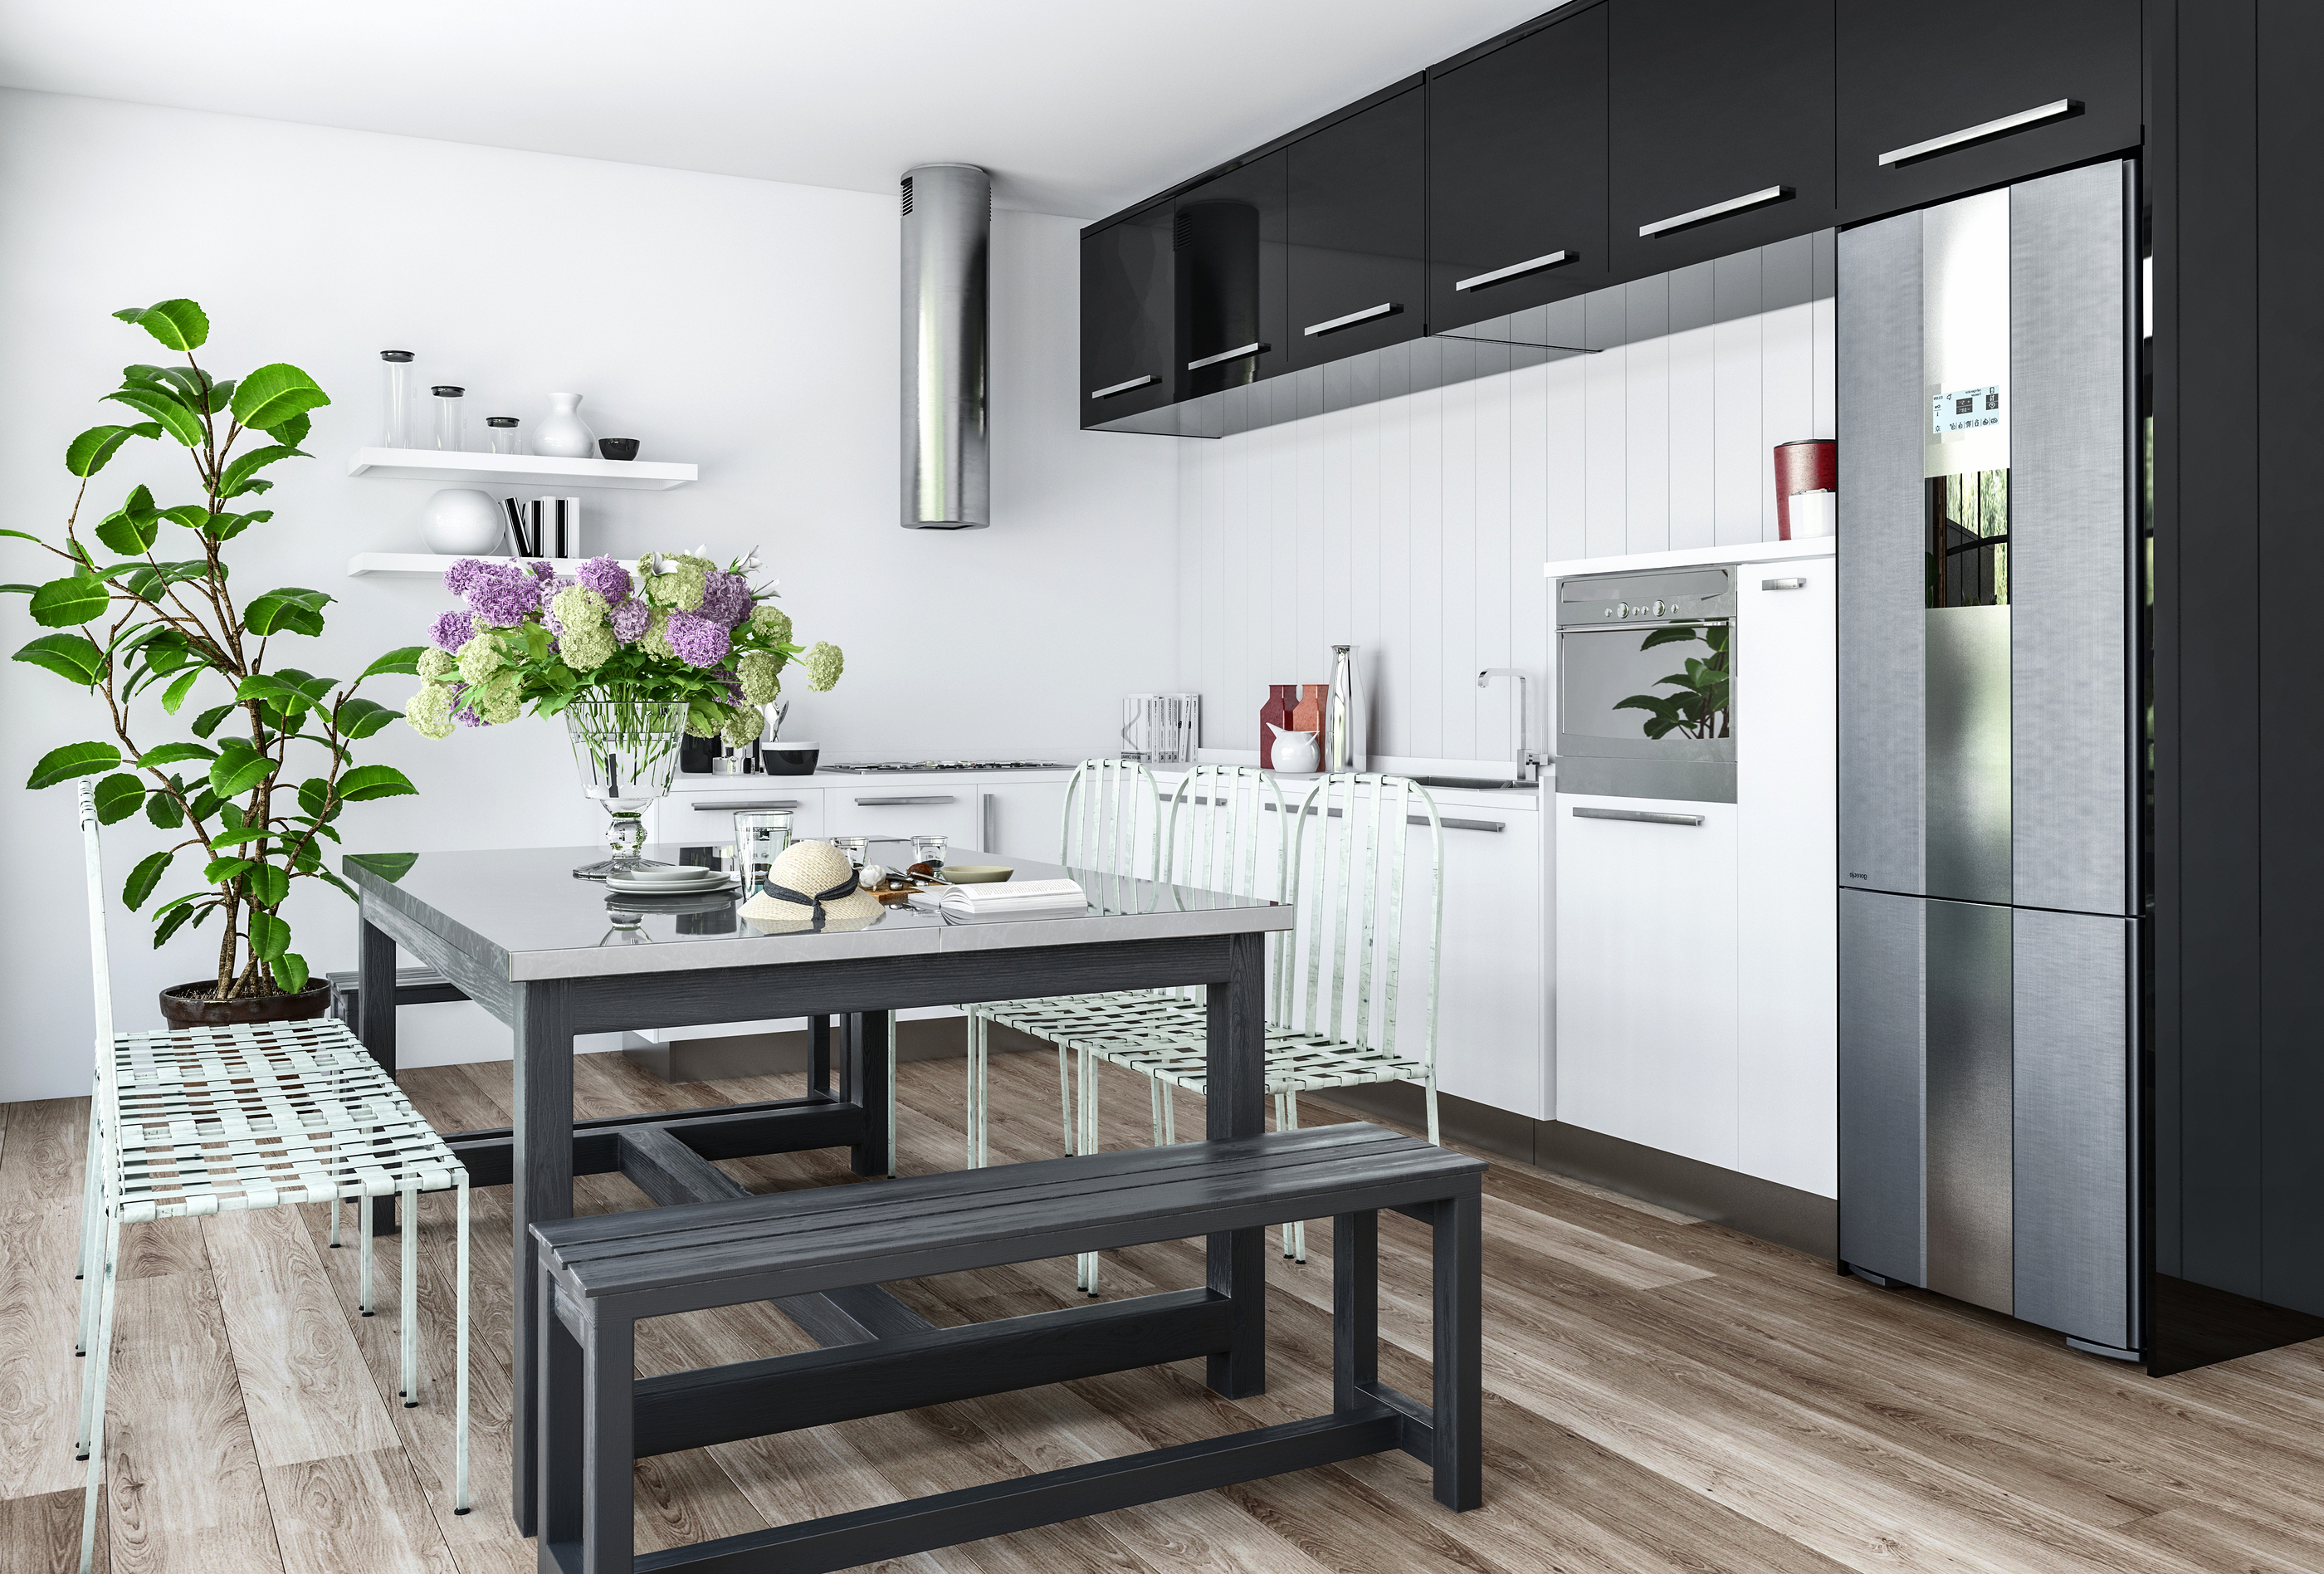 Modern kitchen in minimalist interior design with black and white furniture and dining table with ch